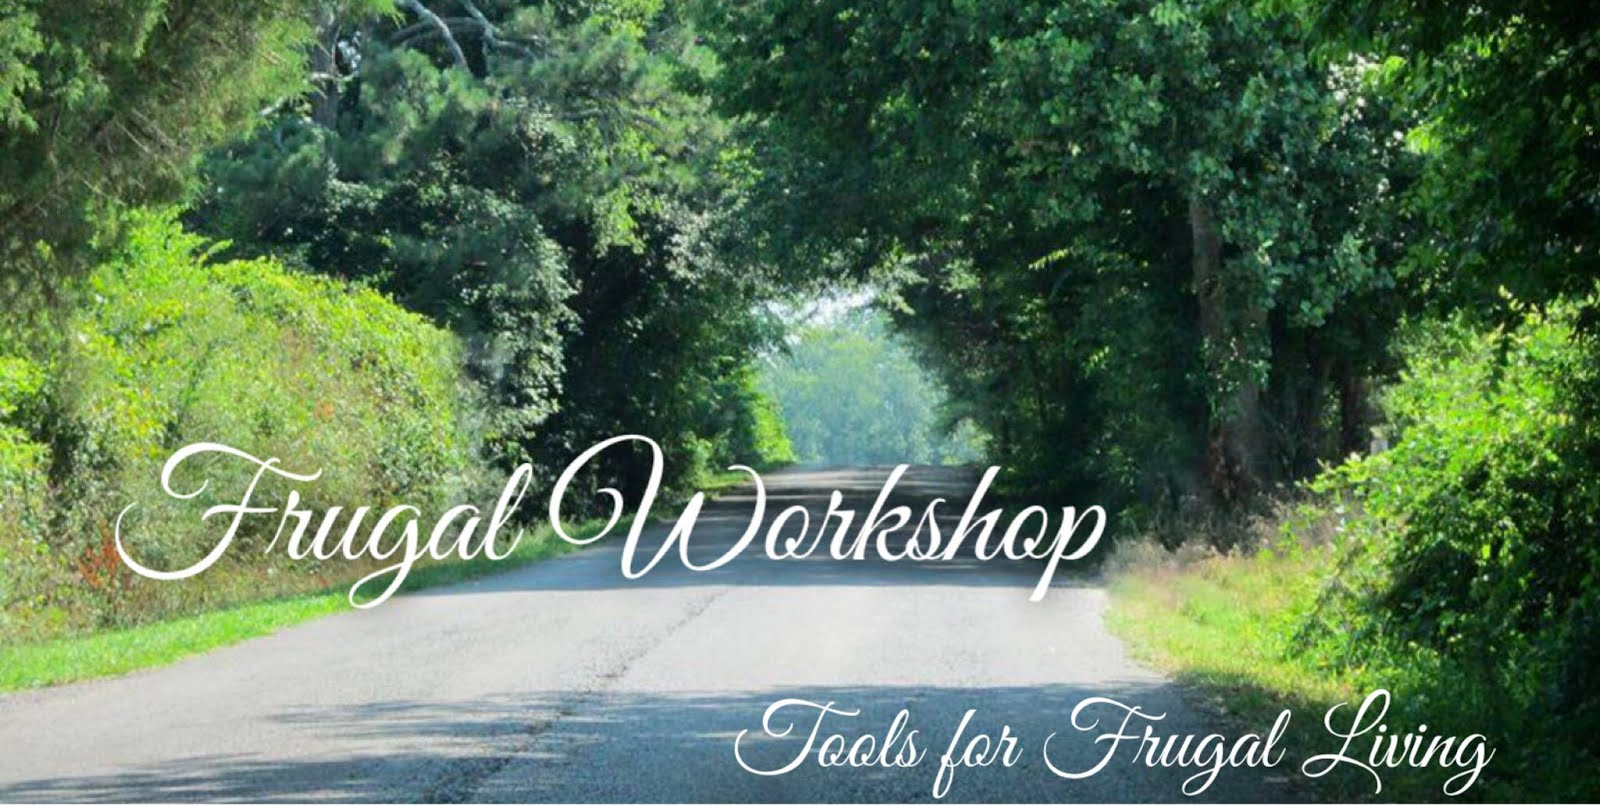 Frugal Workshop